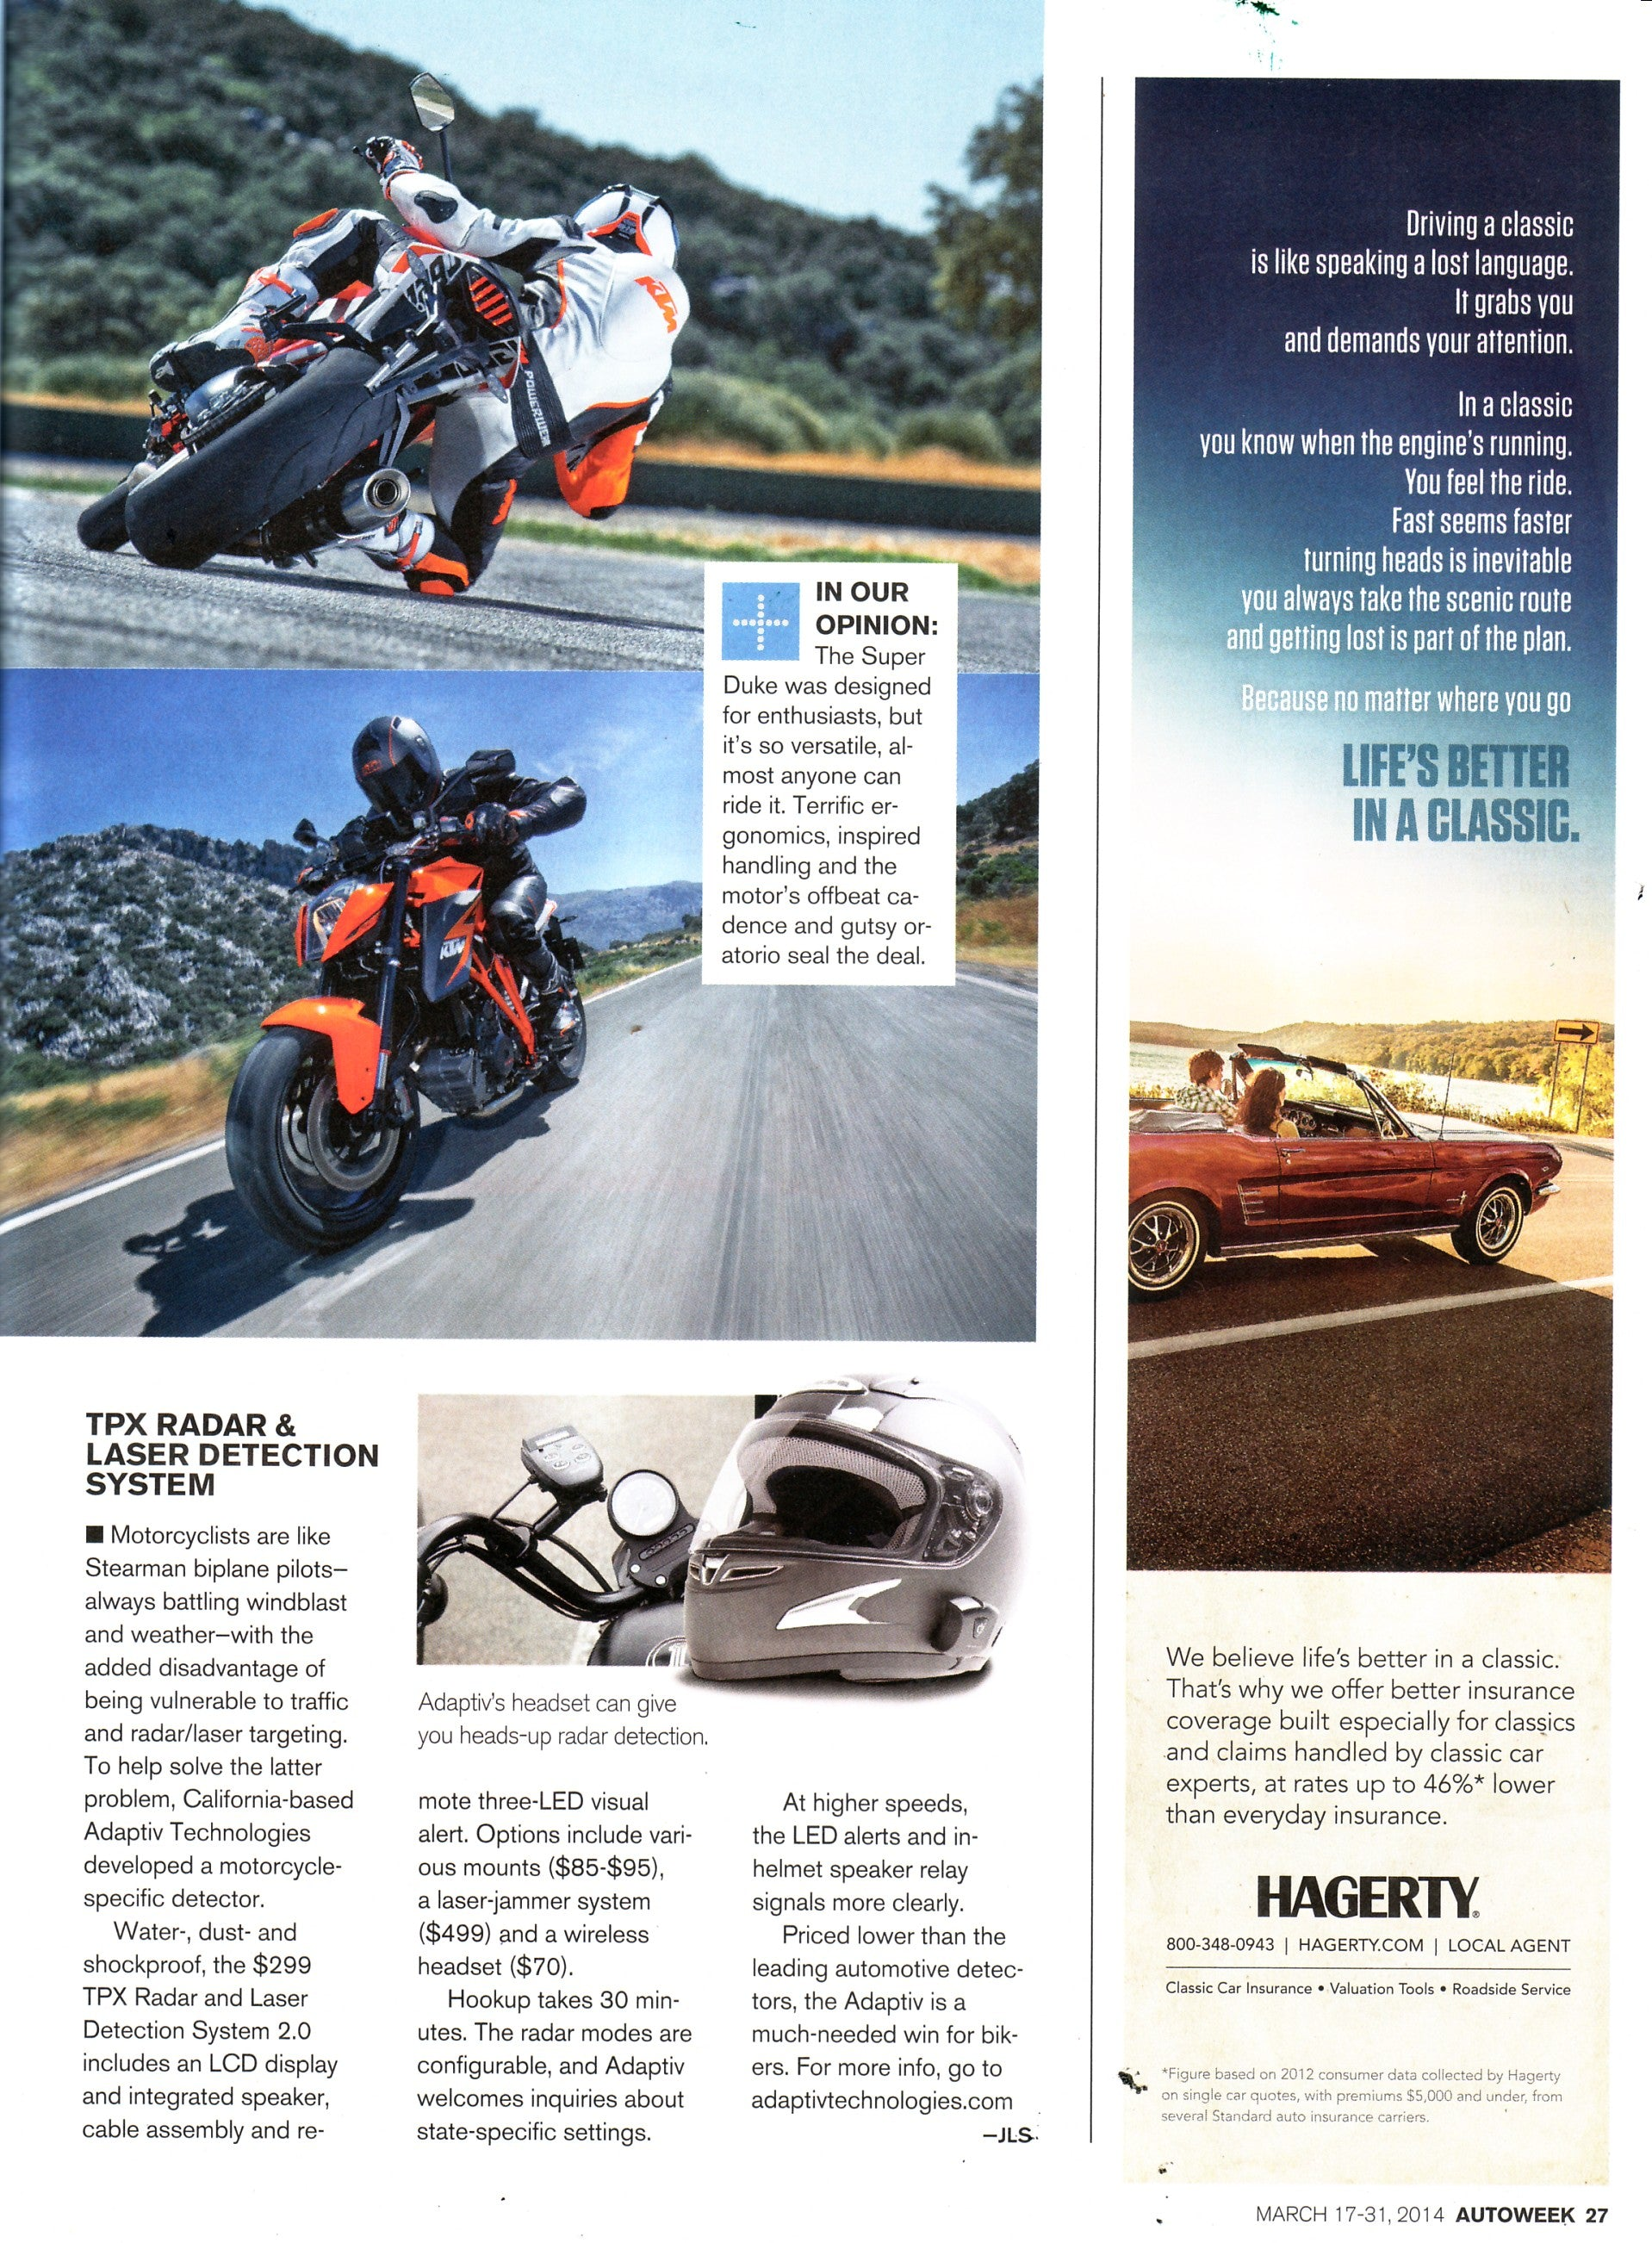 Autoweek Magazine March 2014